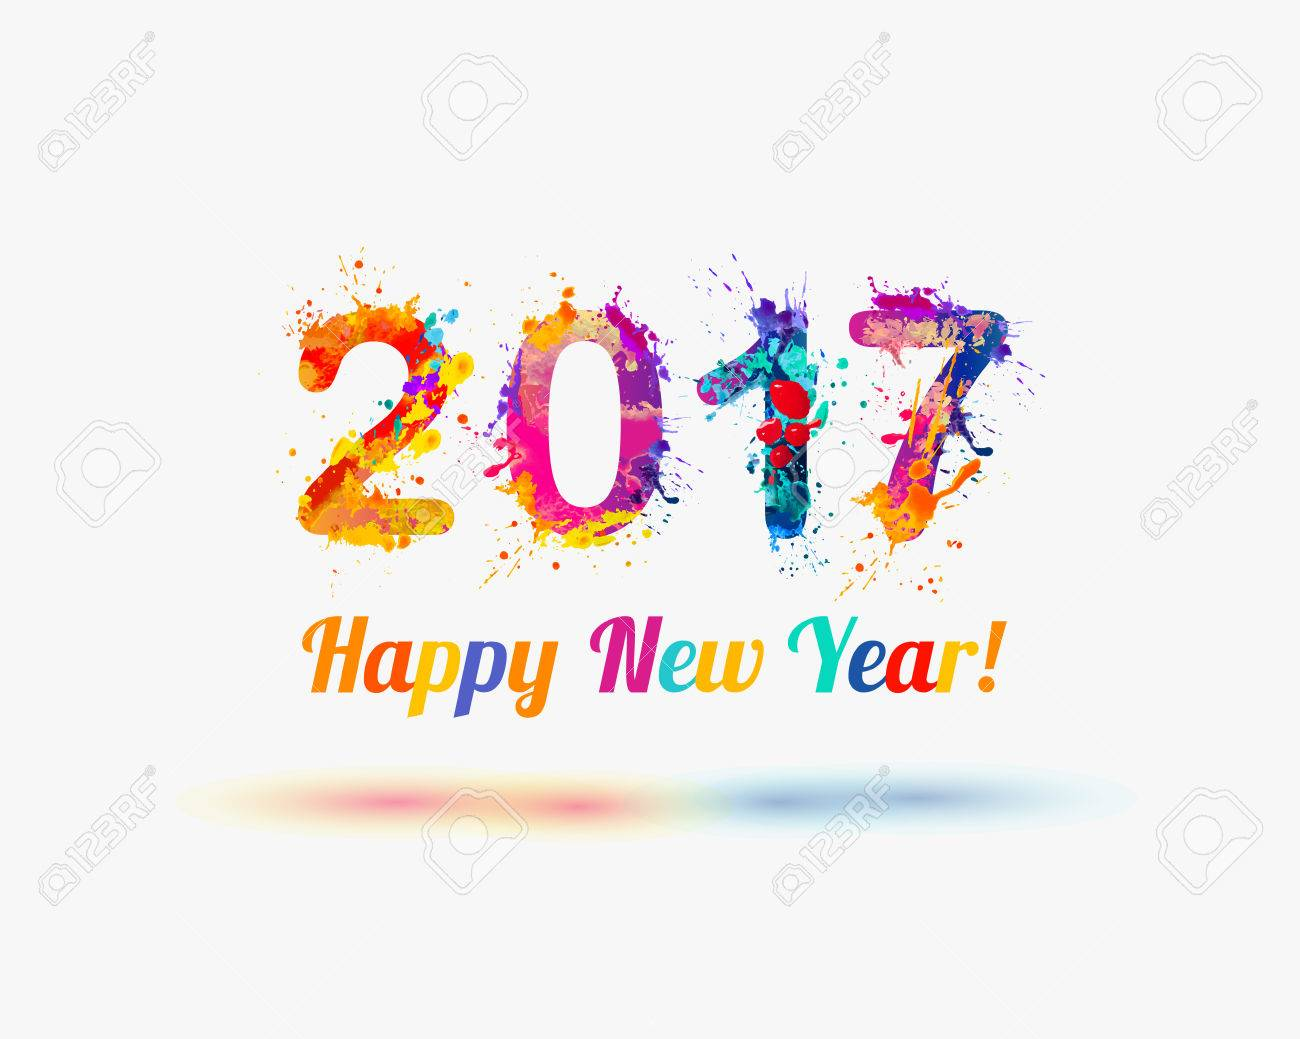 Congratulations on the New Year 2017 for children 39